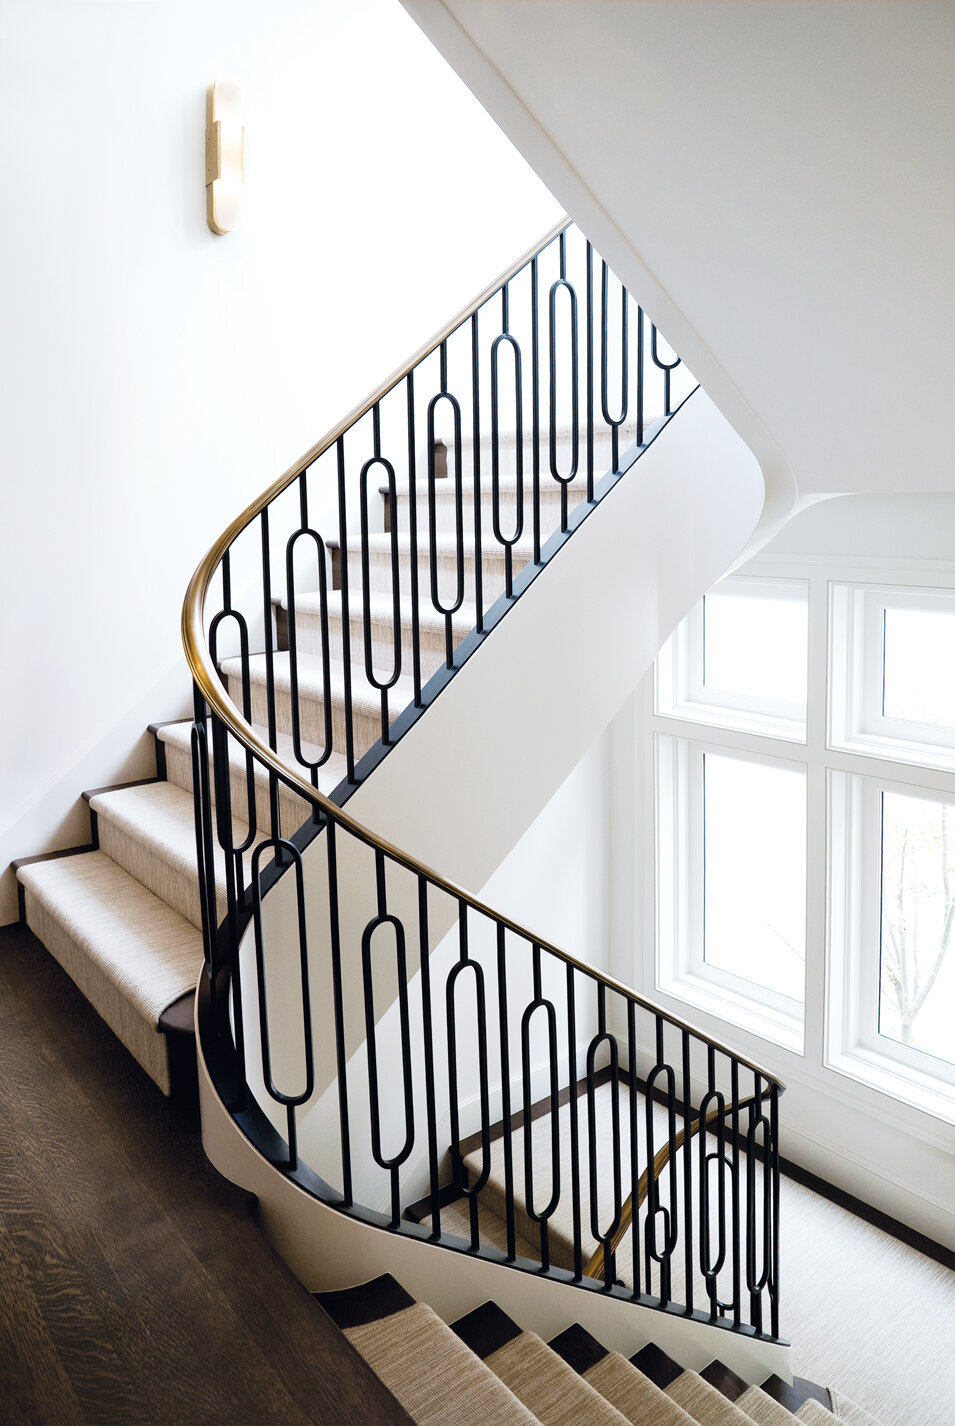 Presidio Heights Bronze railing - Four-story switchback stair with patinated bronze cap rail, Painted steel pickets, cold rolled steel flatbar. Private residence, San Francisco